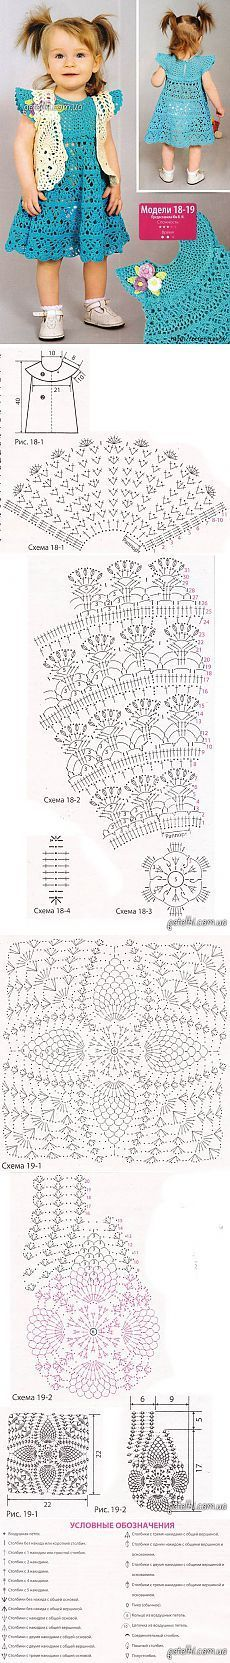 Free Graphics Crochet Patterns - Crochet Patrones Gráficos Gratuitos: Vestidito de Niña Crochet color turqueza